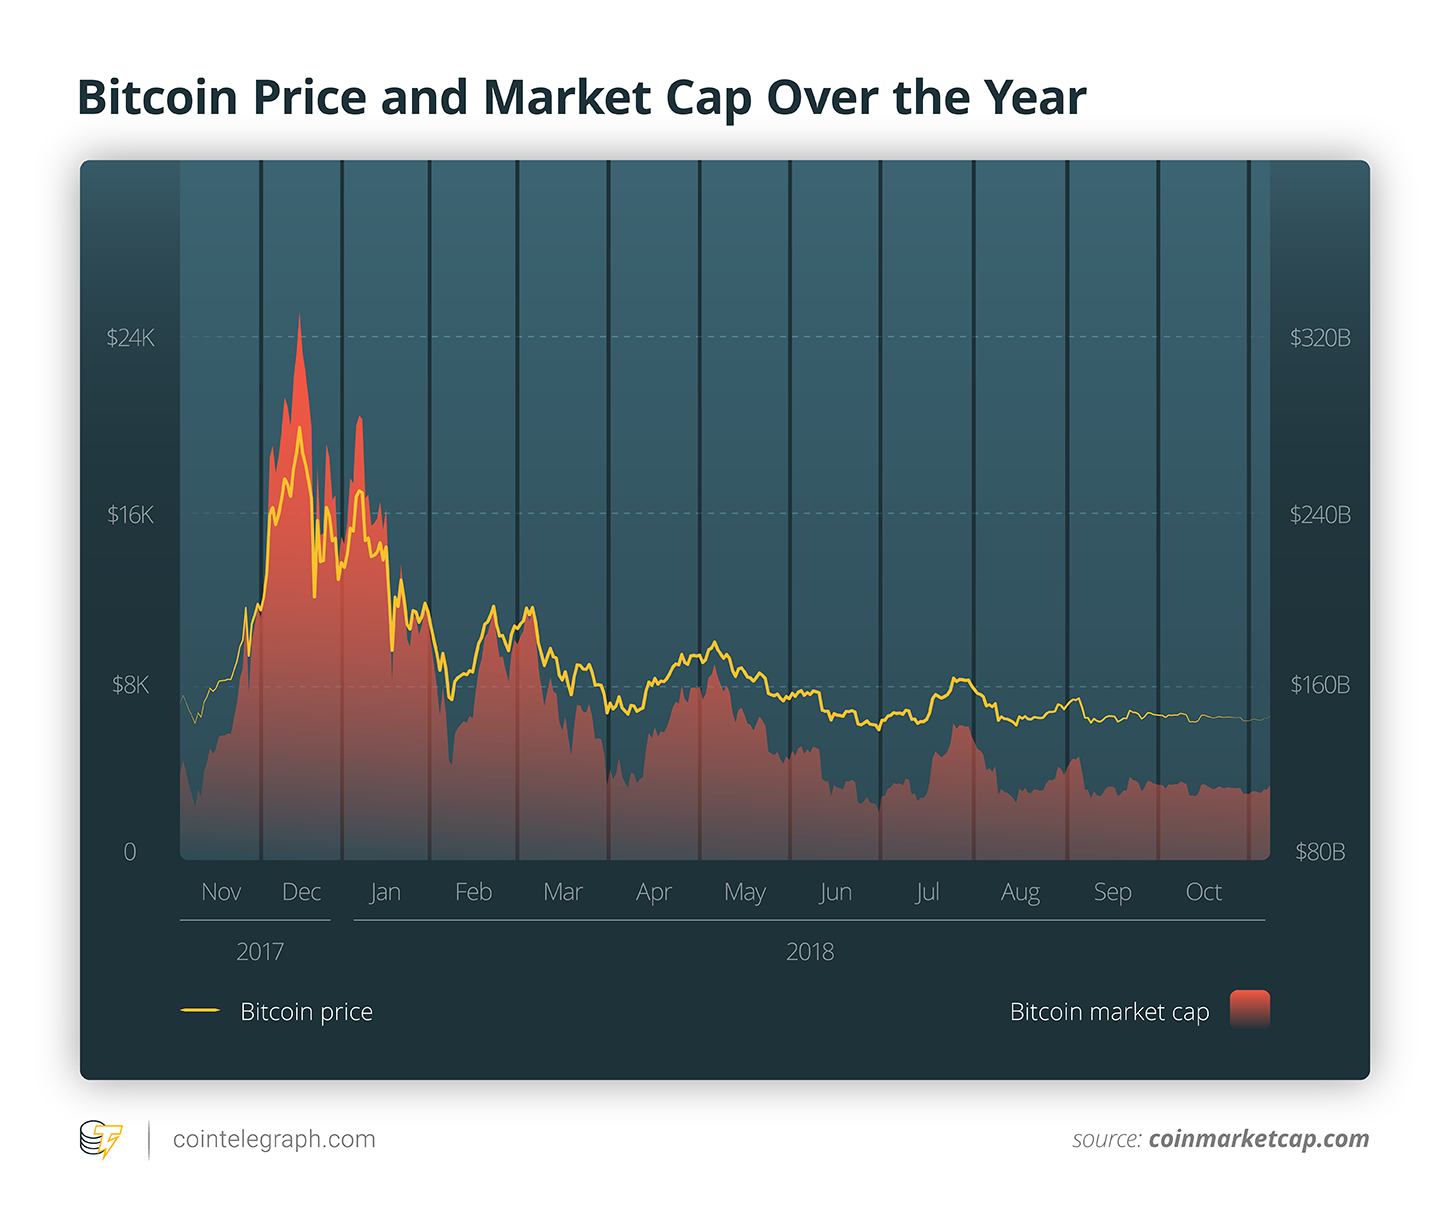 Bitcoin Price and Market Cap Over the Year